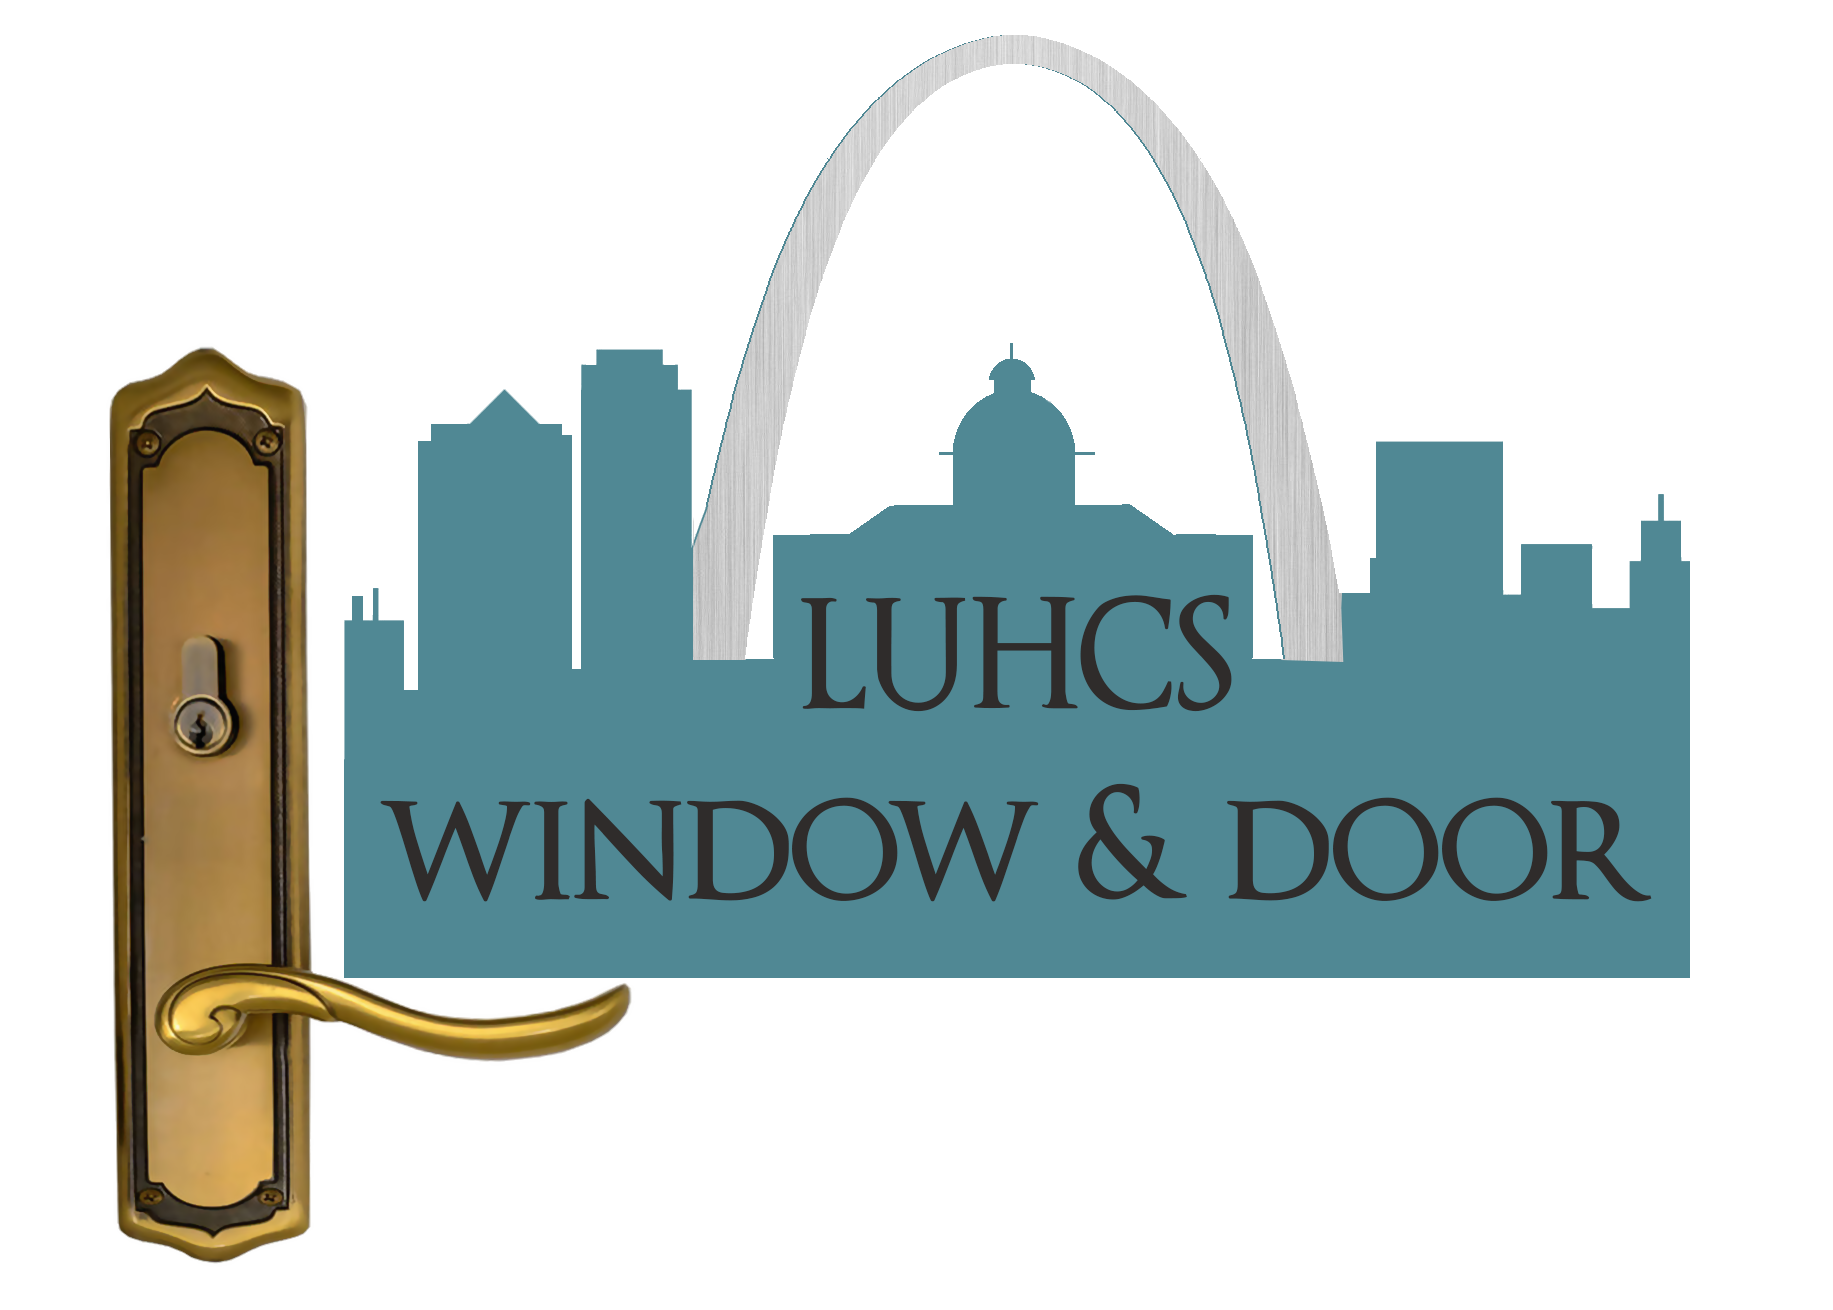 Luhcs Window door st louis